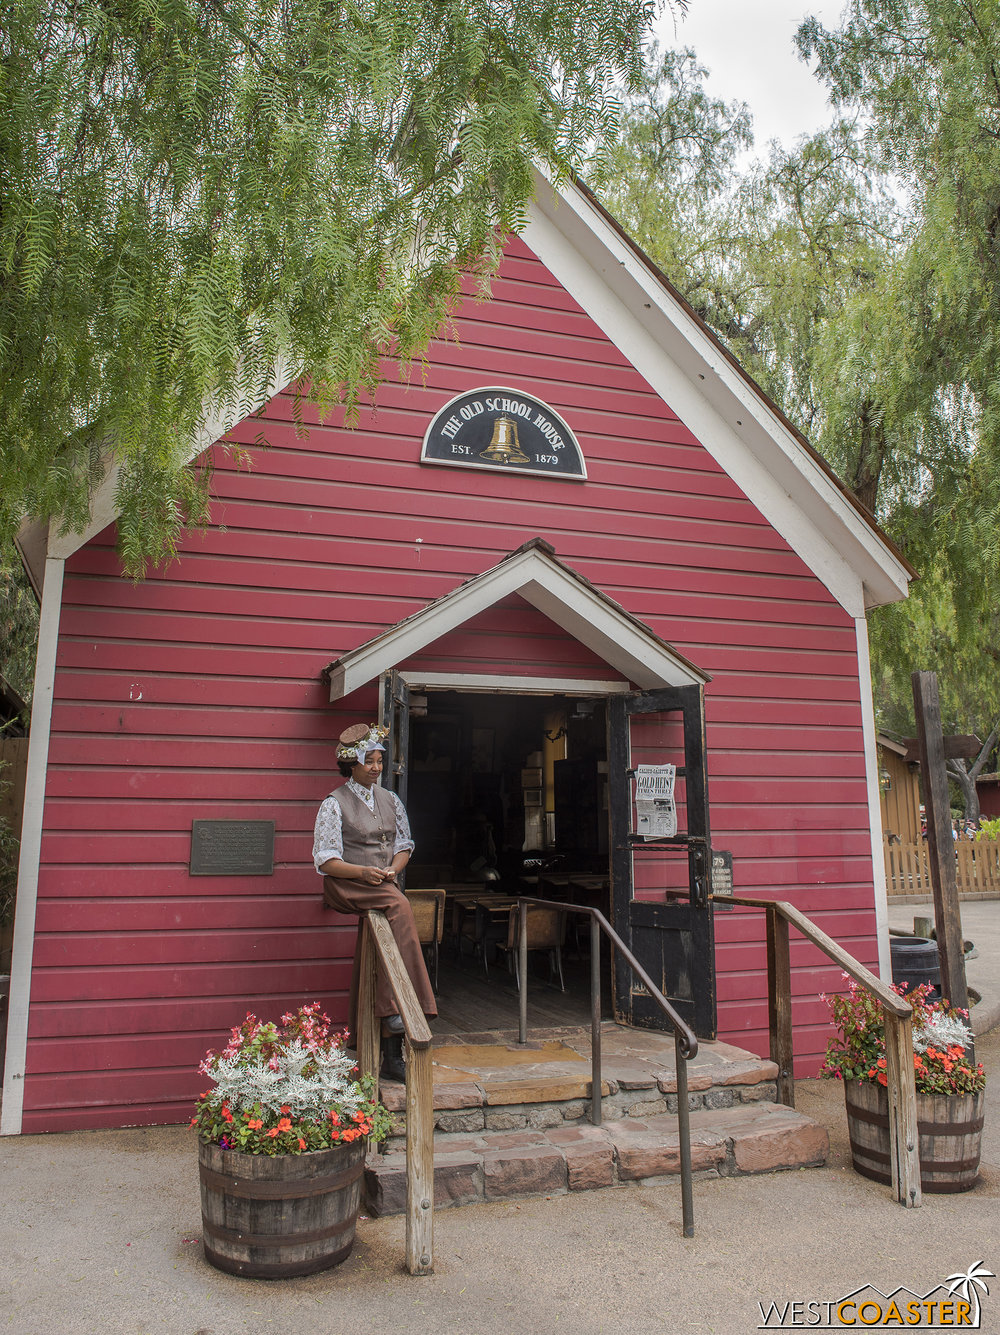 The Schoolhouse is open throughout the year but plays a role in Ghost Town Alive as well.